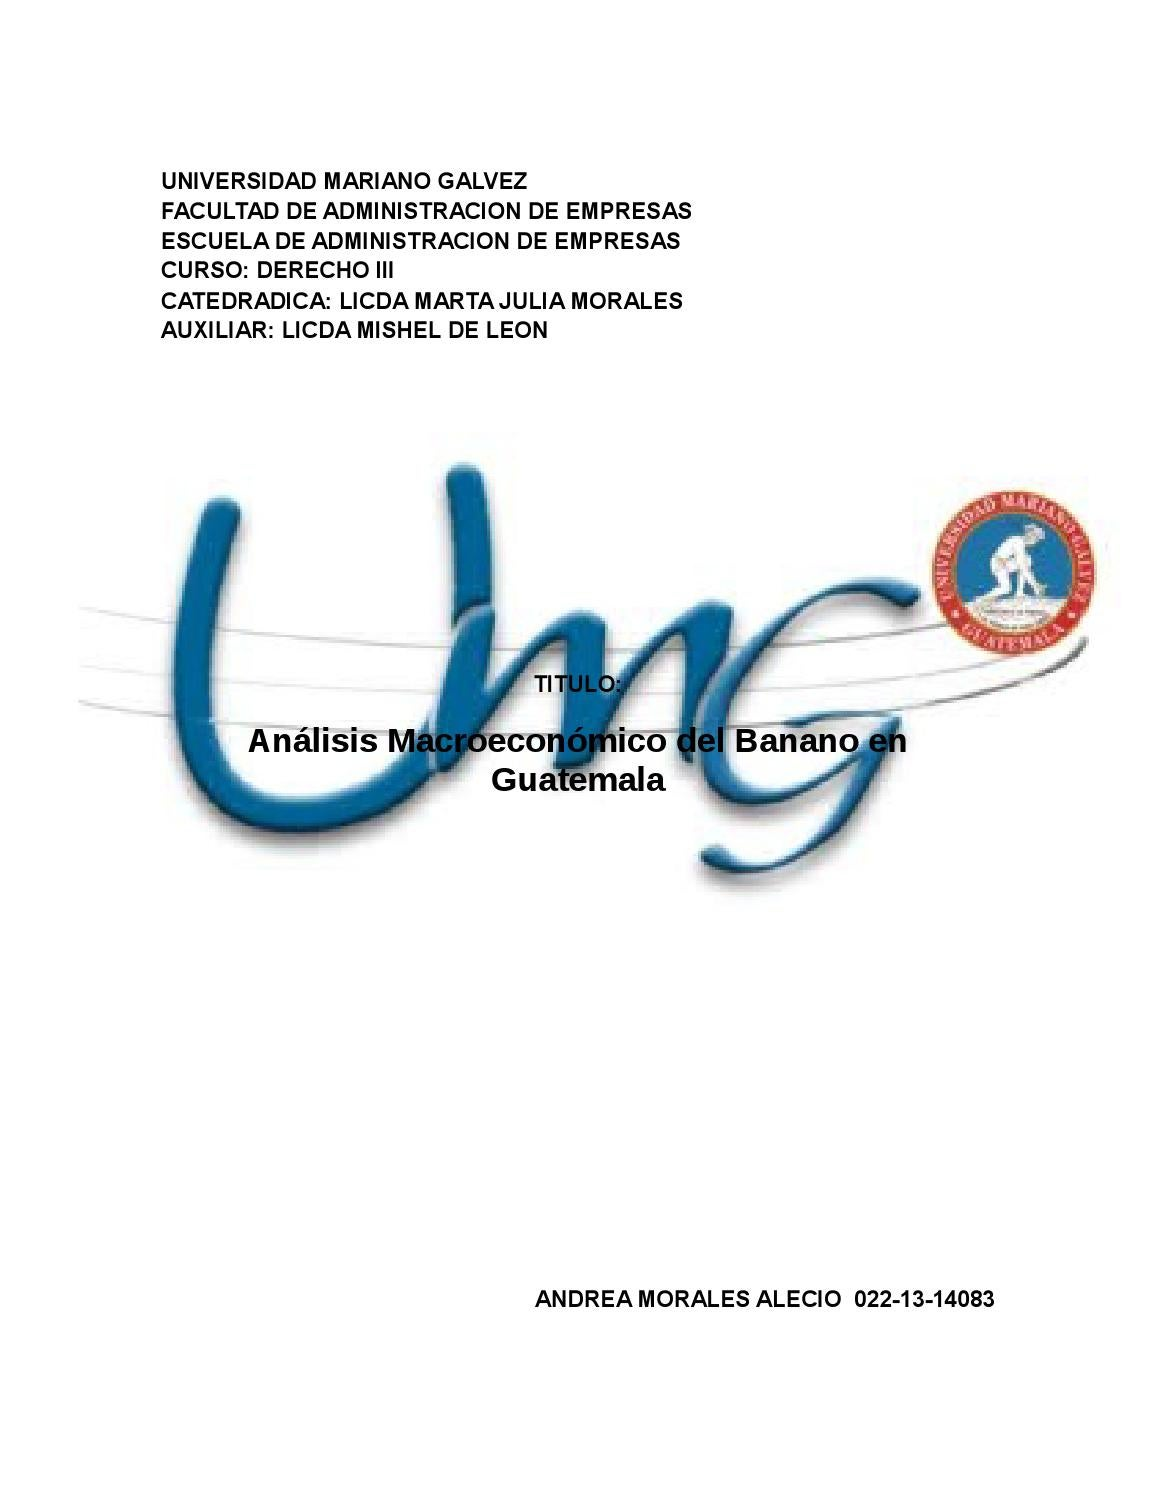 Caratula Umg By Andy Alessio Issuu